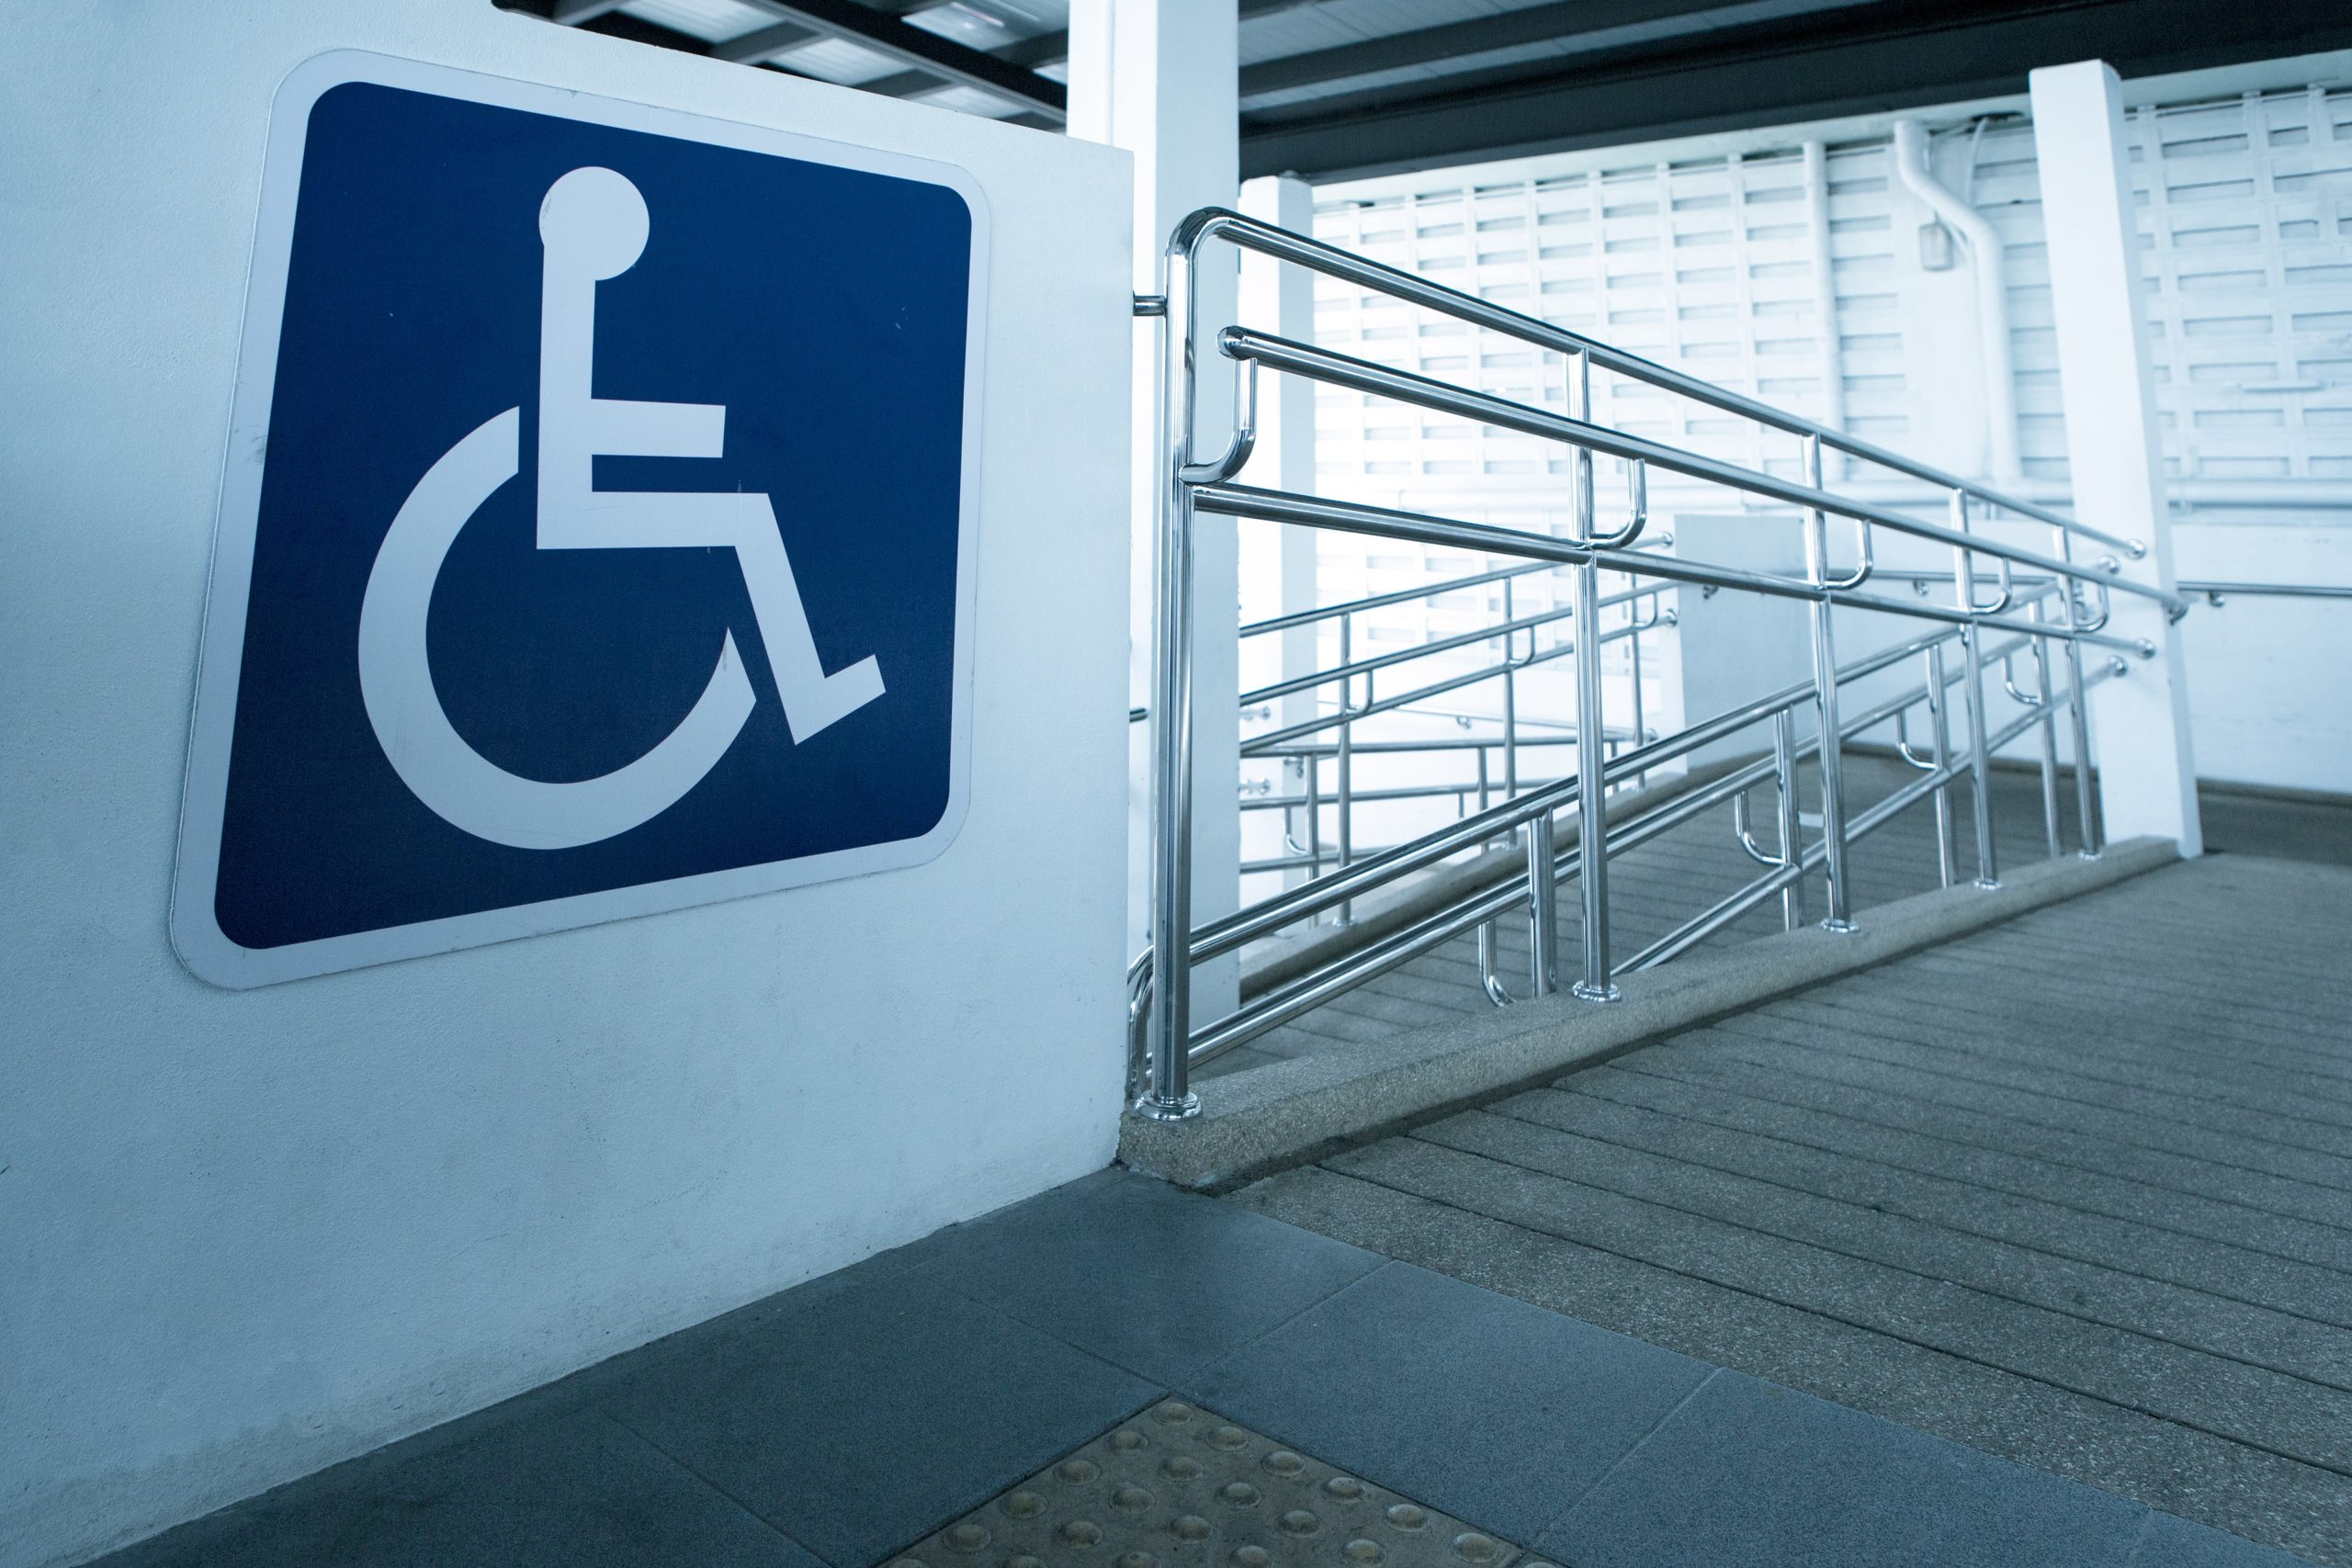 An ADA-compliant ramp with an International Symbol of Access